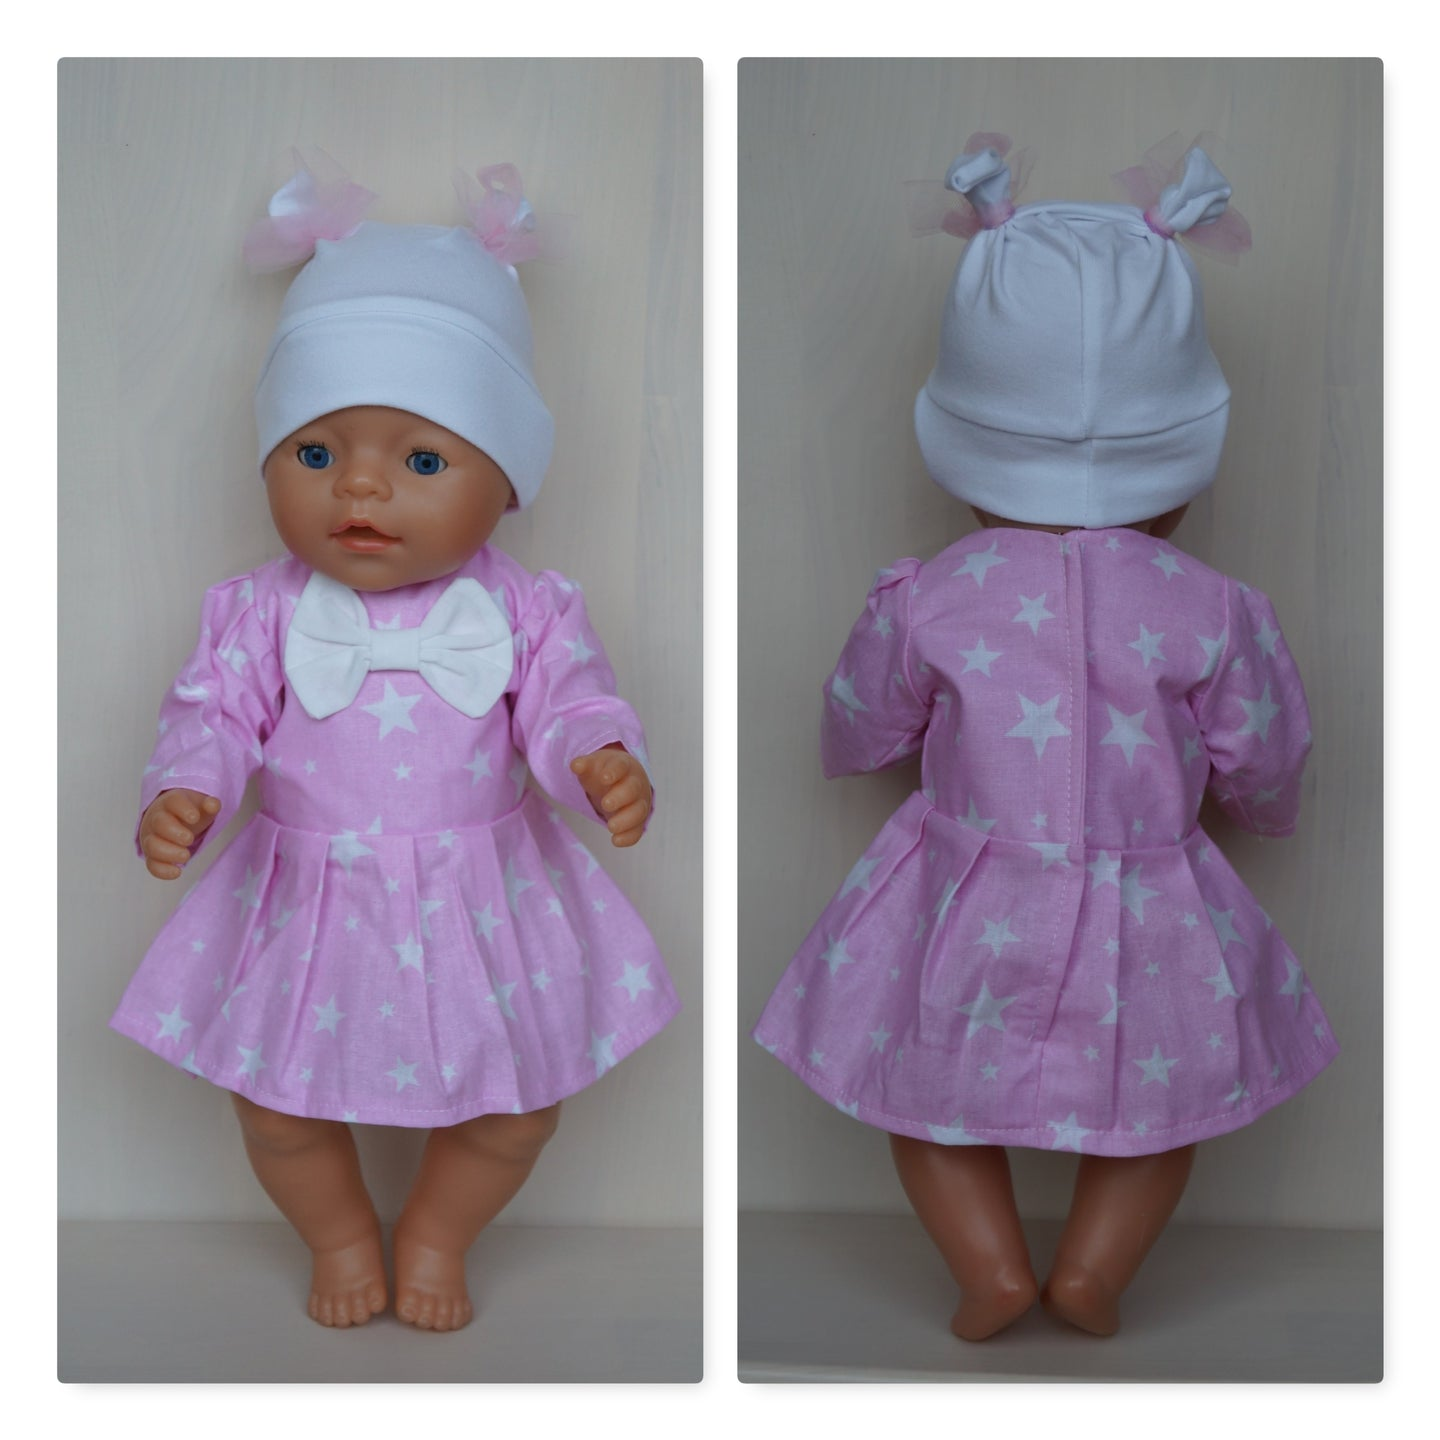 Pink dress and cap clothes set for Baby Born (sister), new Baby Annabell or other doll 43 cm